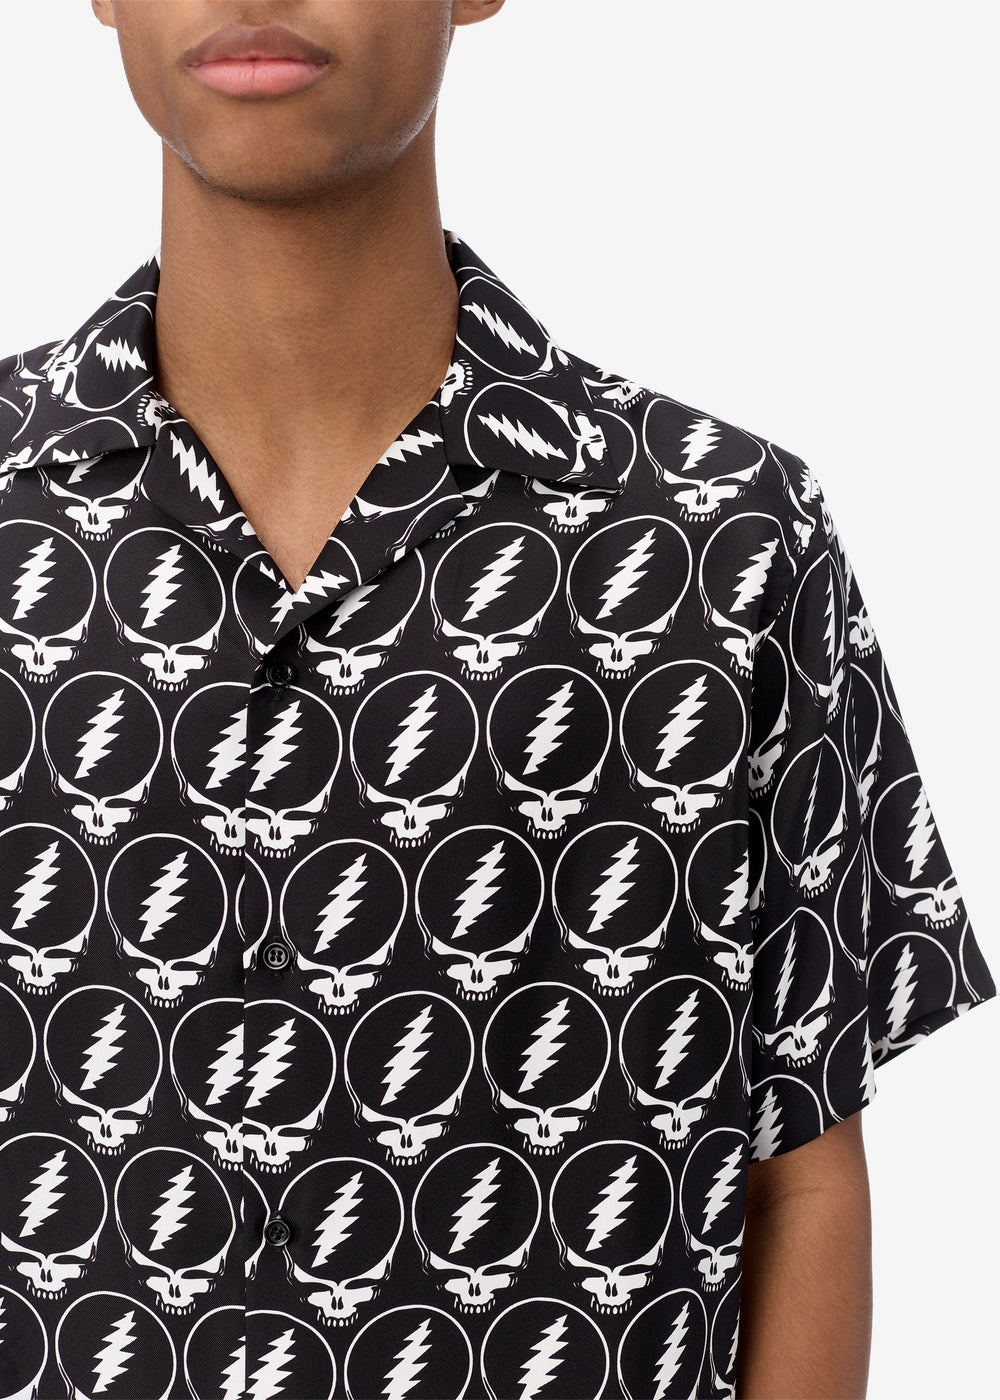 GRATEFUL DEAD SHORT SLEEVE SHIRT - Black / White